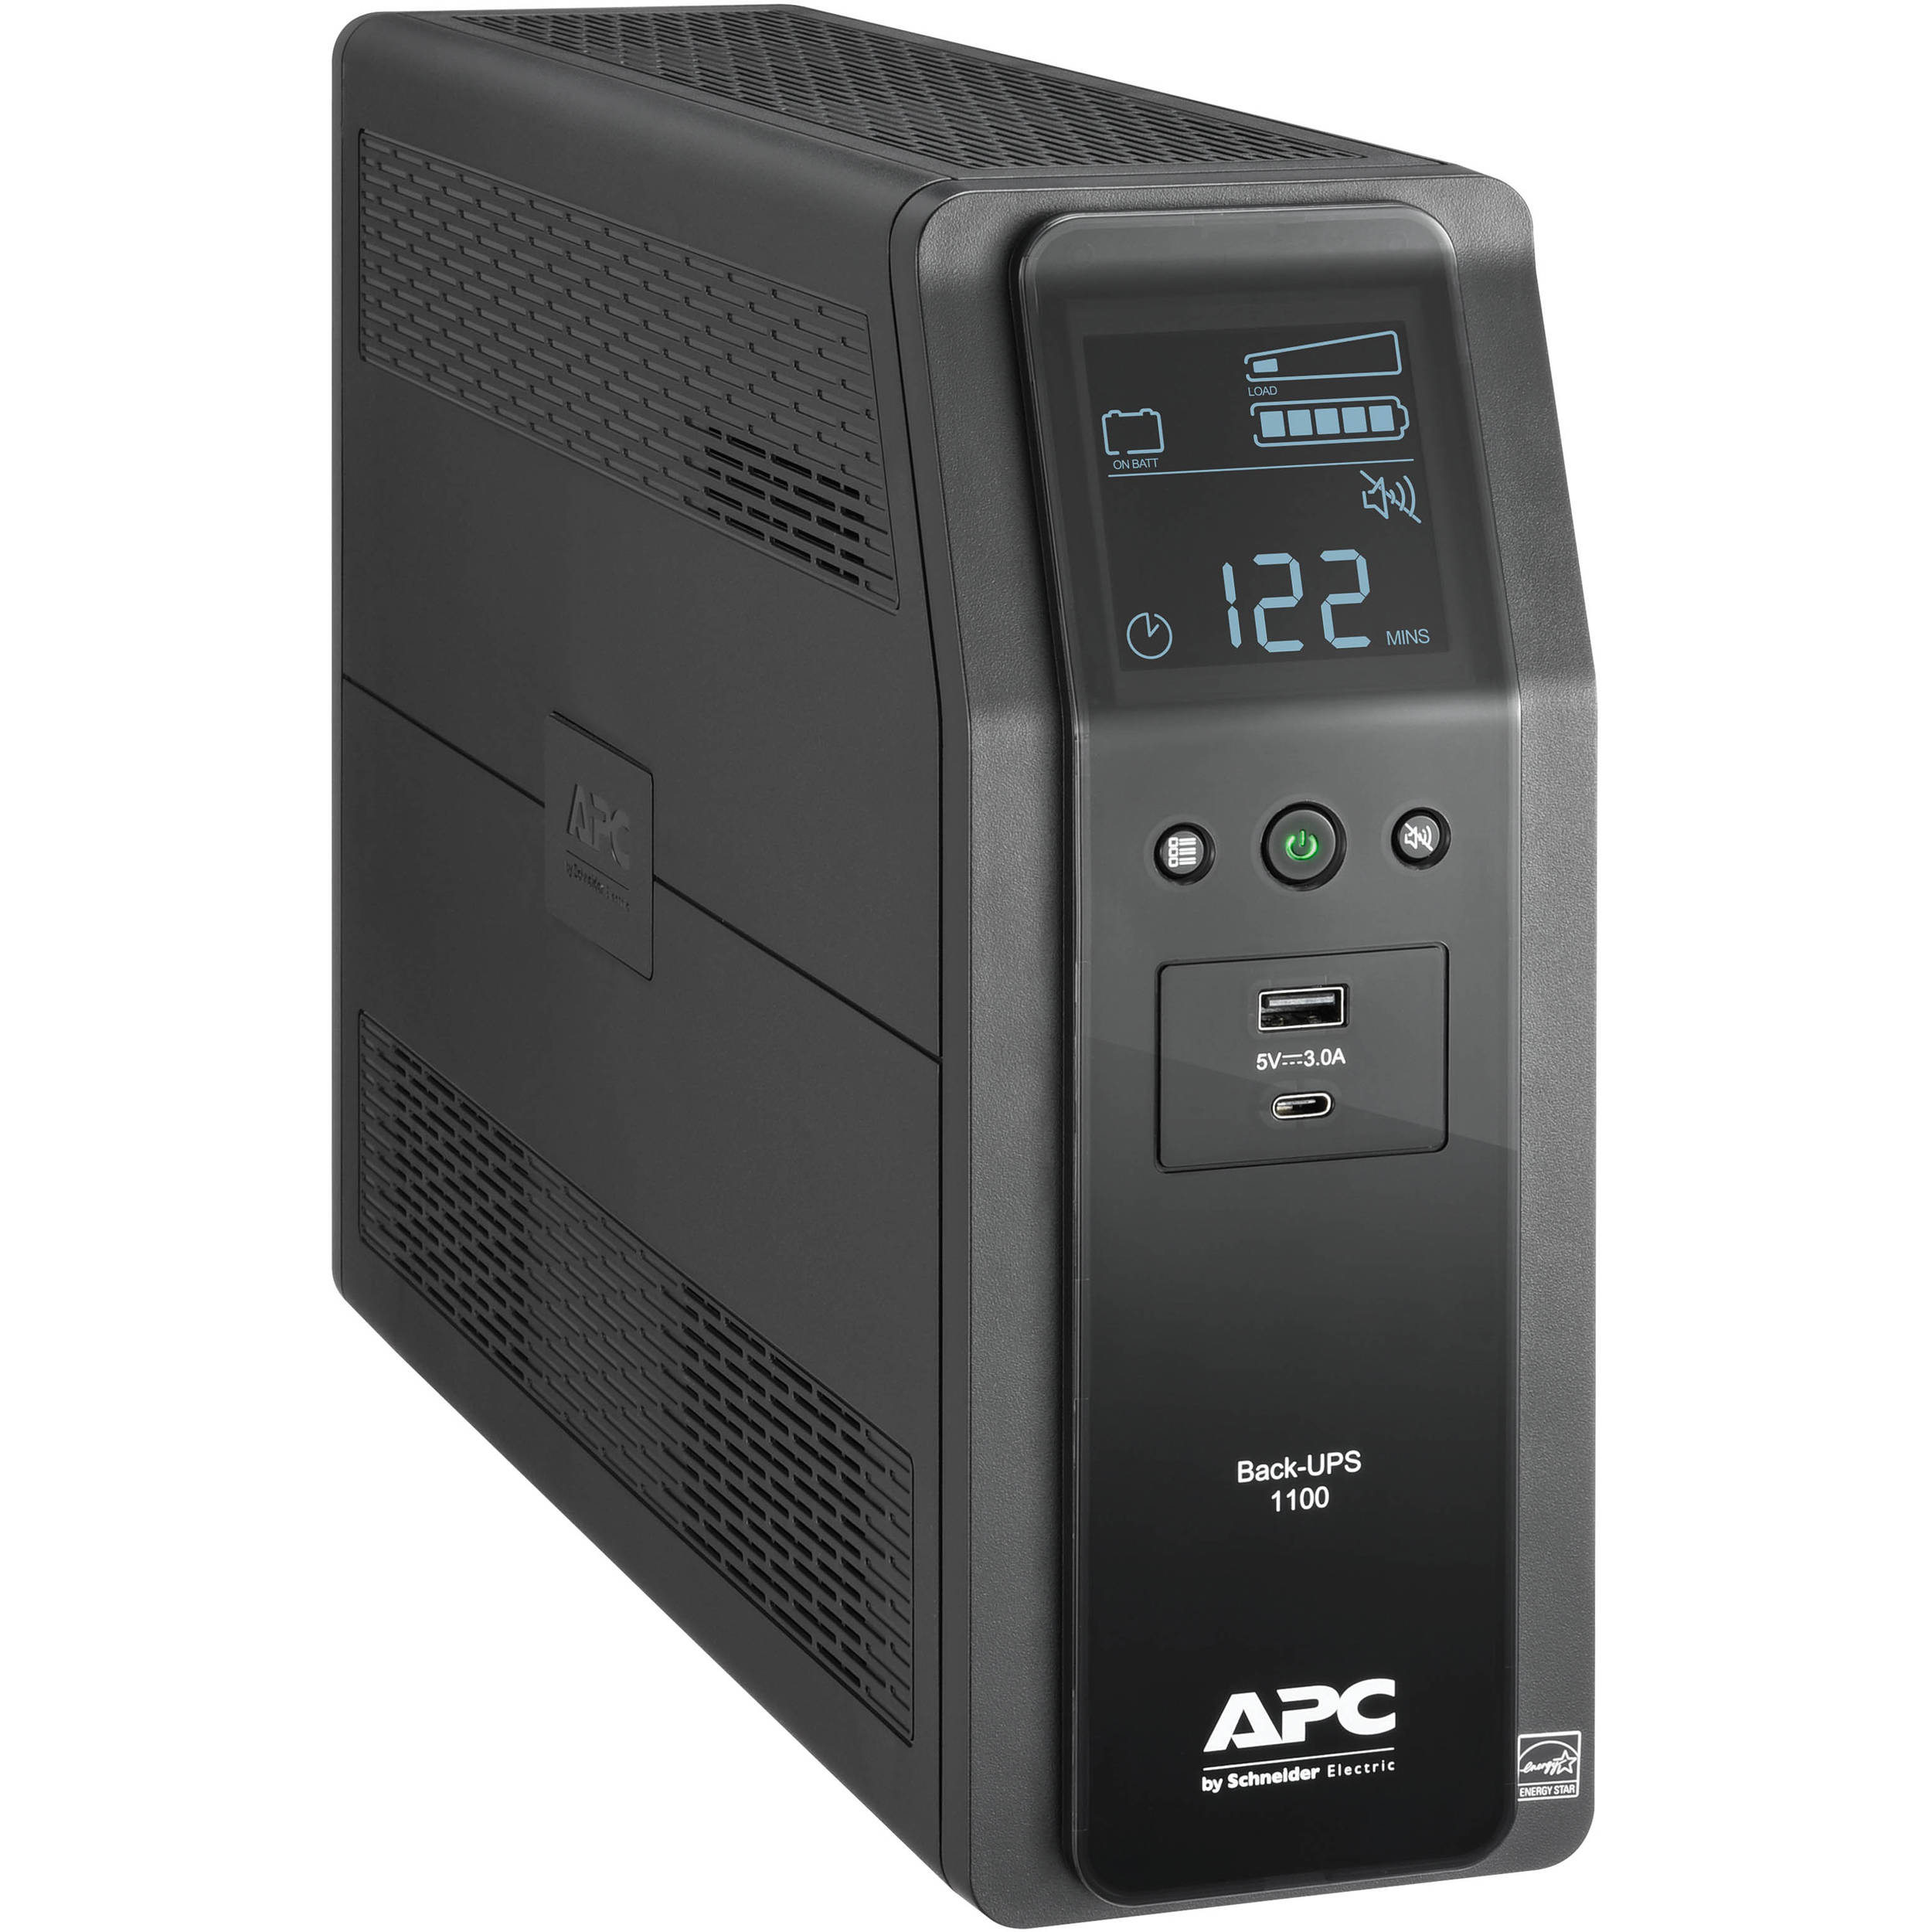 APC BR700G Back-UPS System Electronics Computer Networking